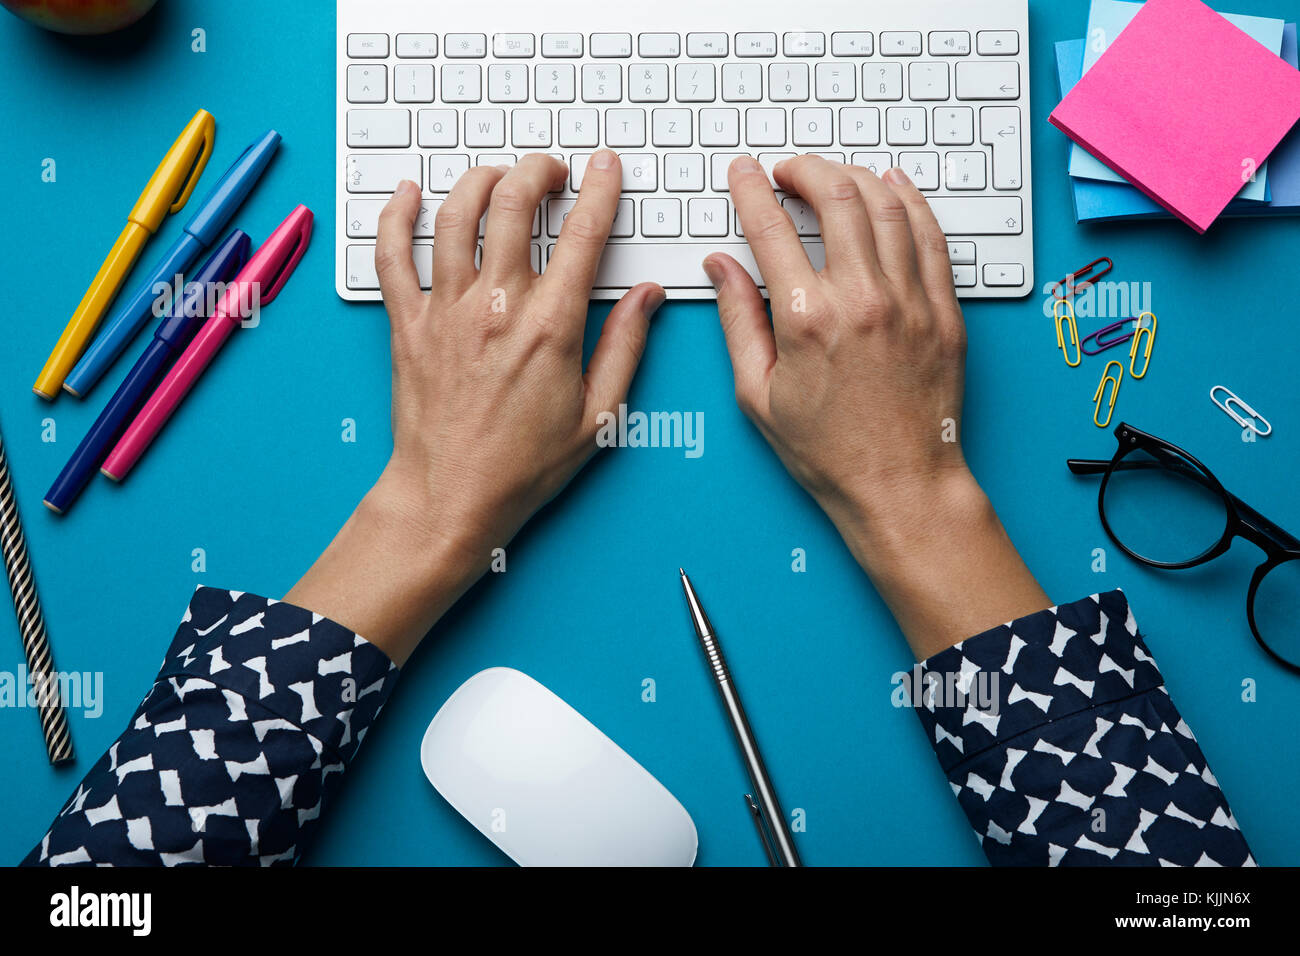 Top view of woman using computer keyboard on desk - Stock Image